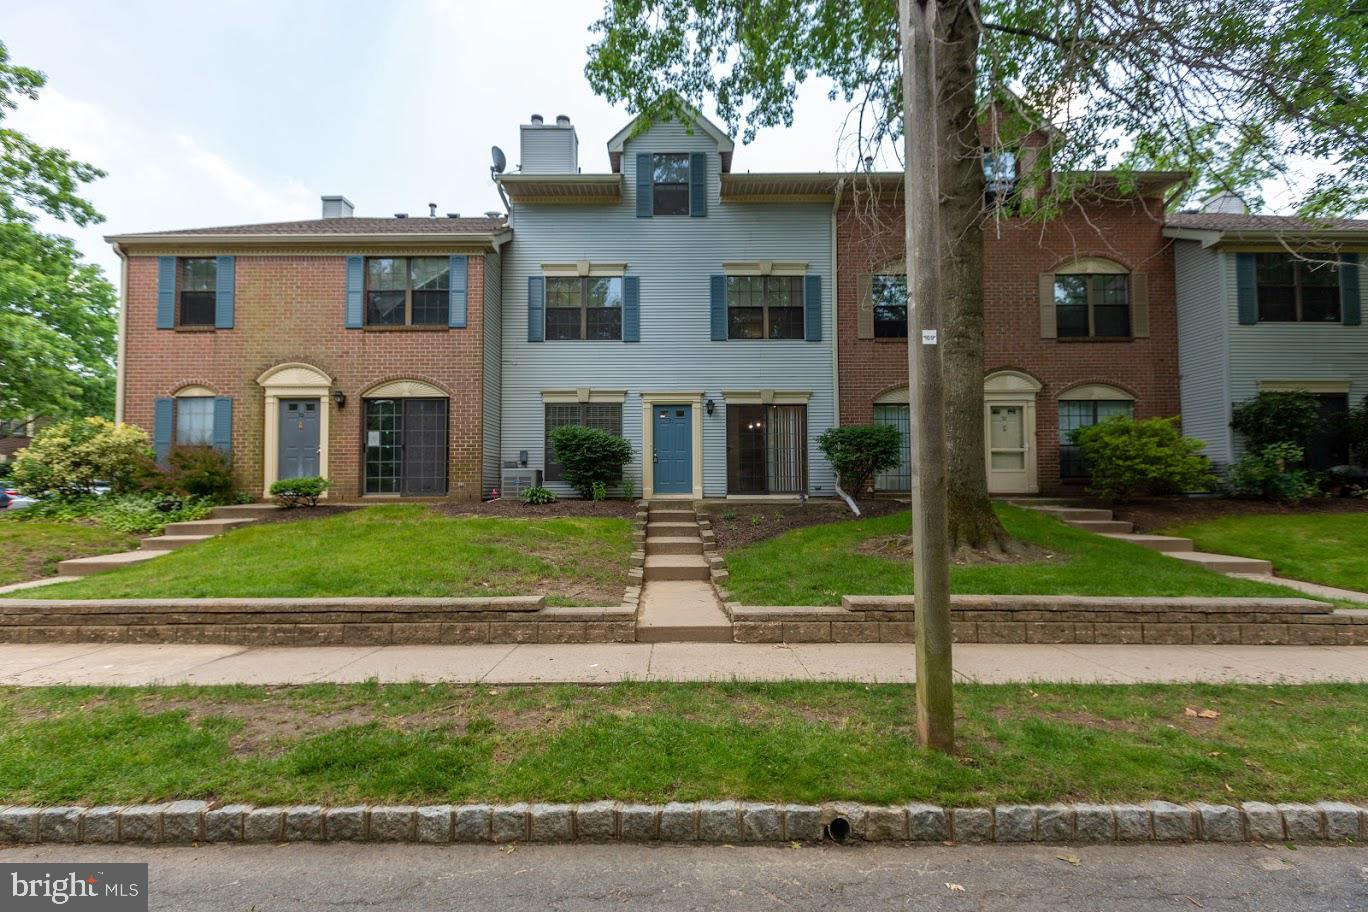 71 DREWES CT, LAWRENCE, NJ 08648